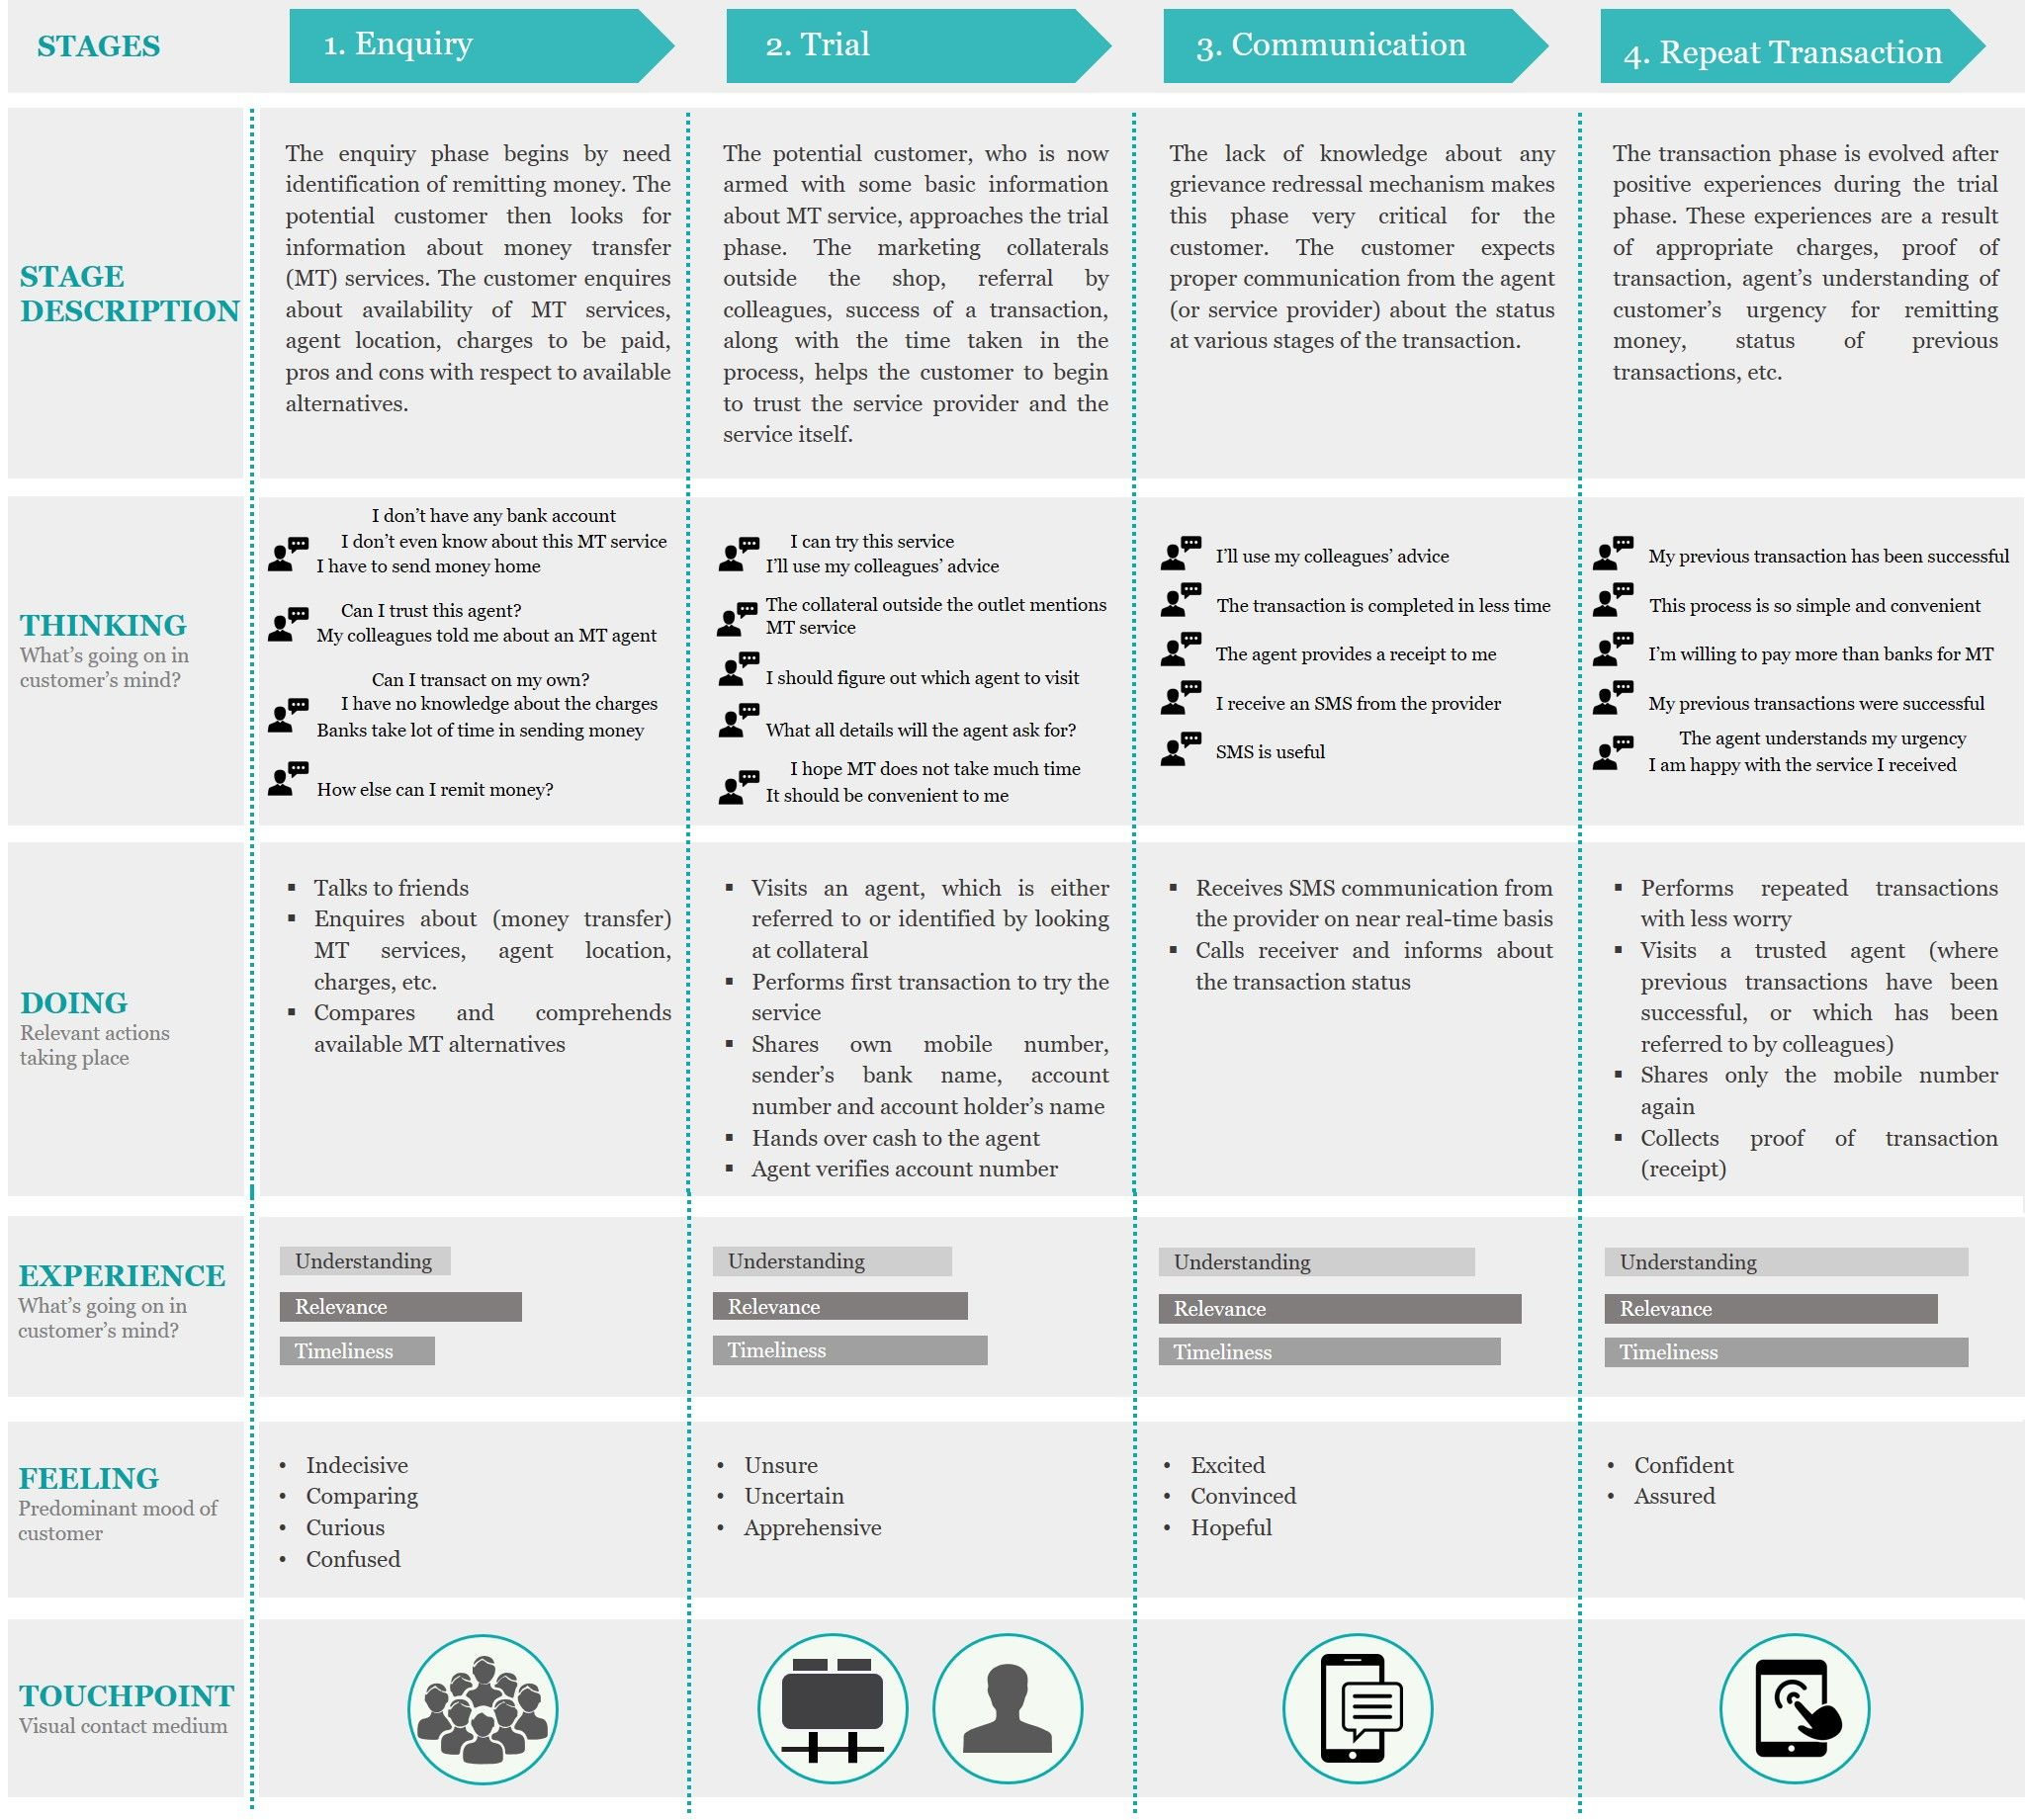 Customer journey map for b2c banking and finance b2c banking and customer journey map for b2c banking and finance pronofoot35fo Choice Image